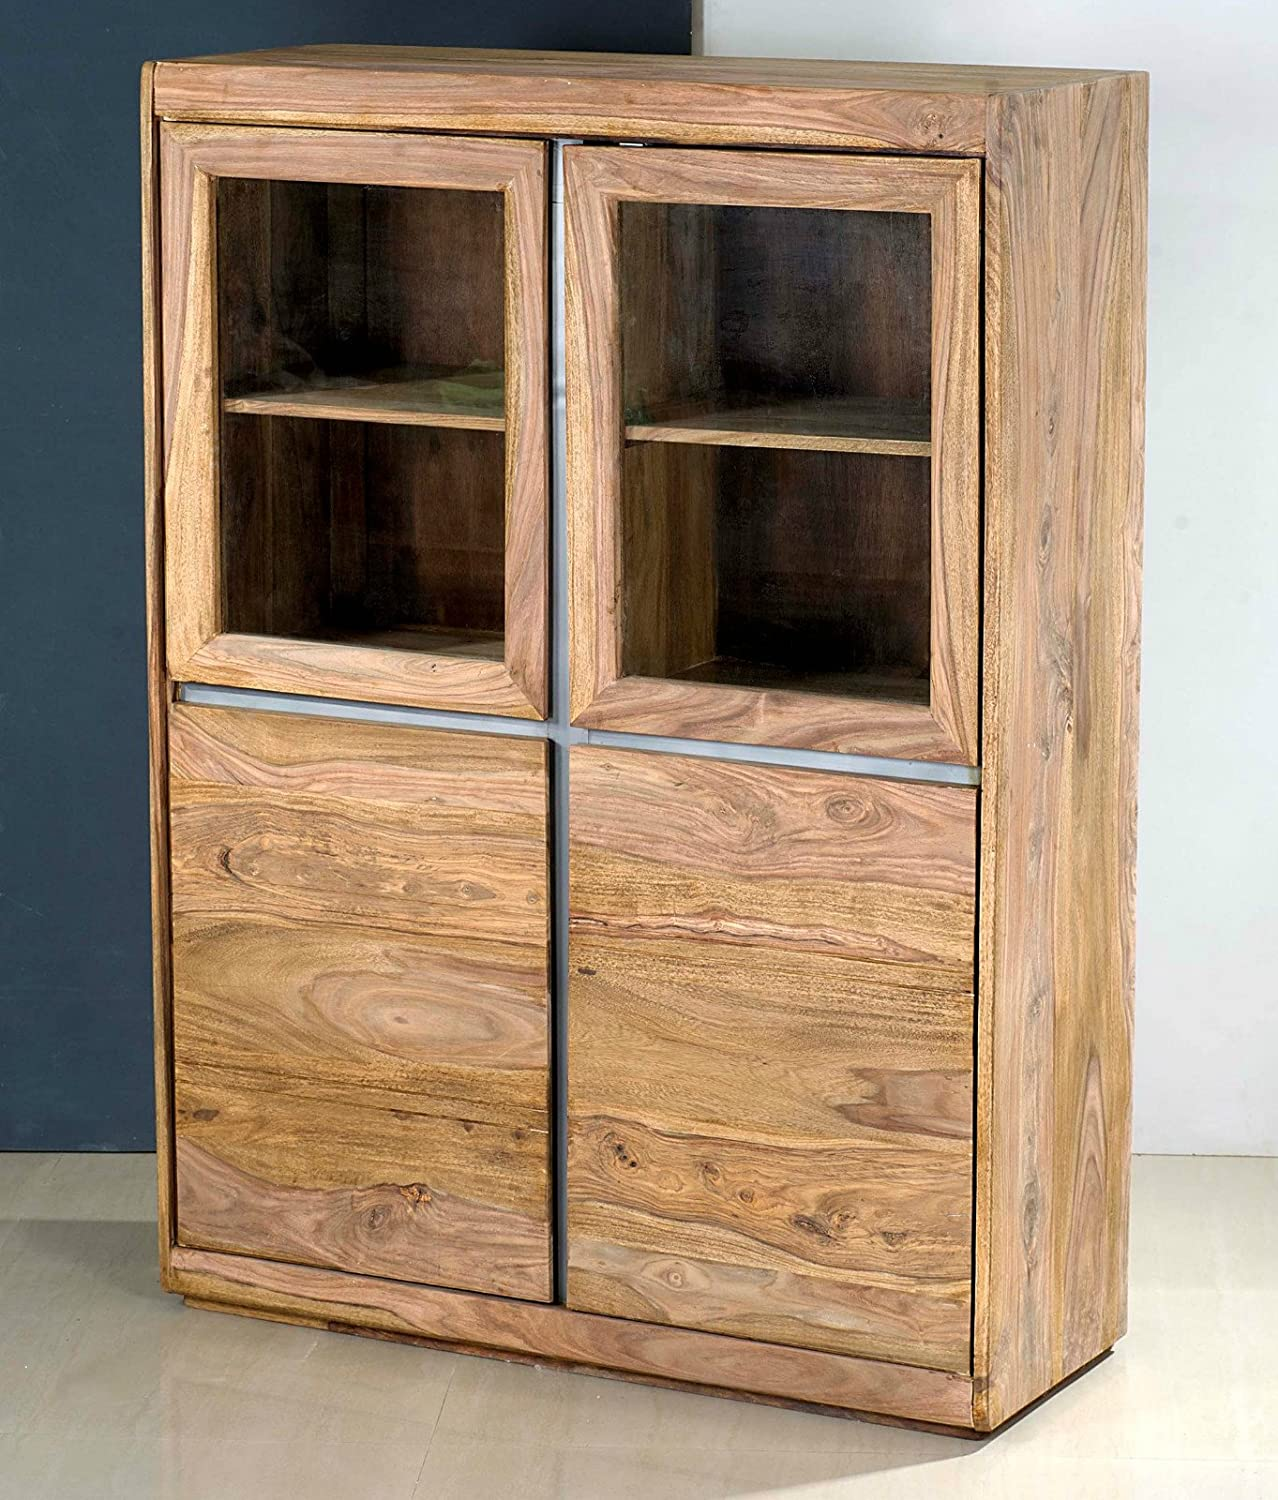 Vitrine Schrank Highboard 'Indian Spirit' Sheesham massiv Holz gebeizt